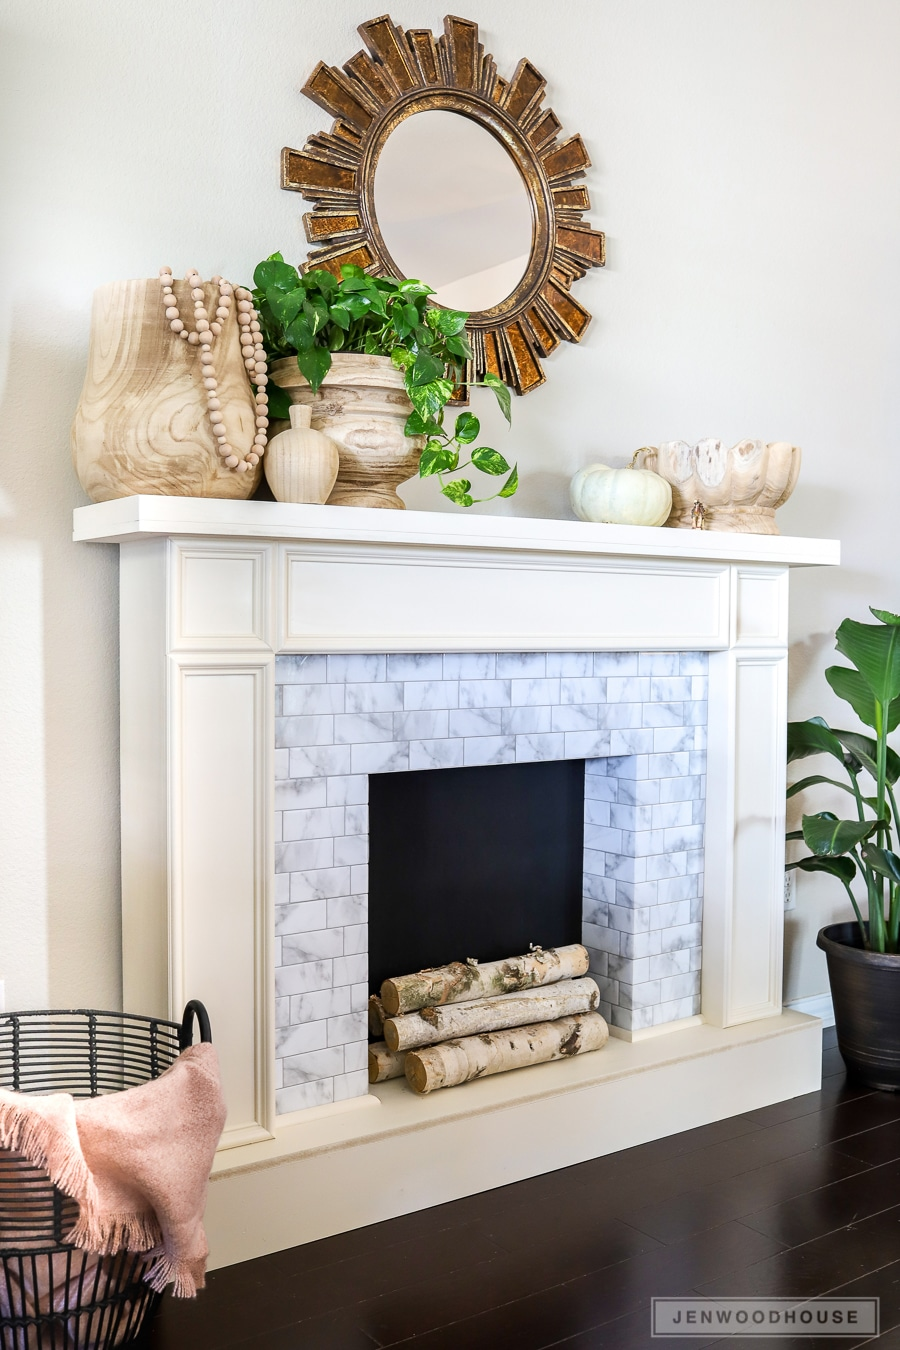 Build a DIY faux fireplace with adhesive tiles! Plans by Jen Woodhouse